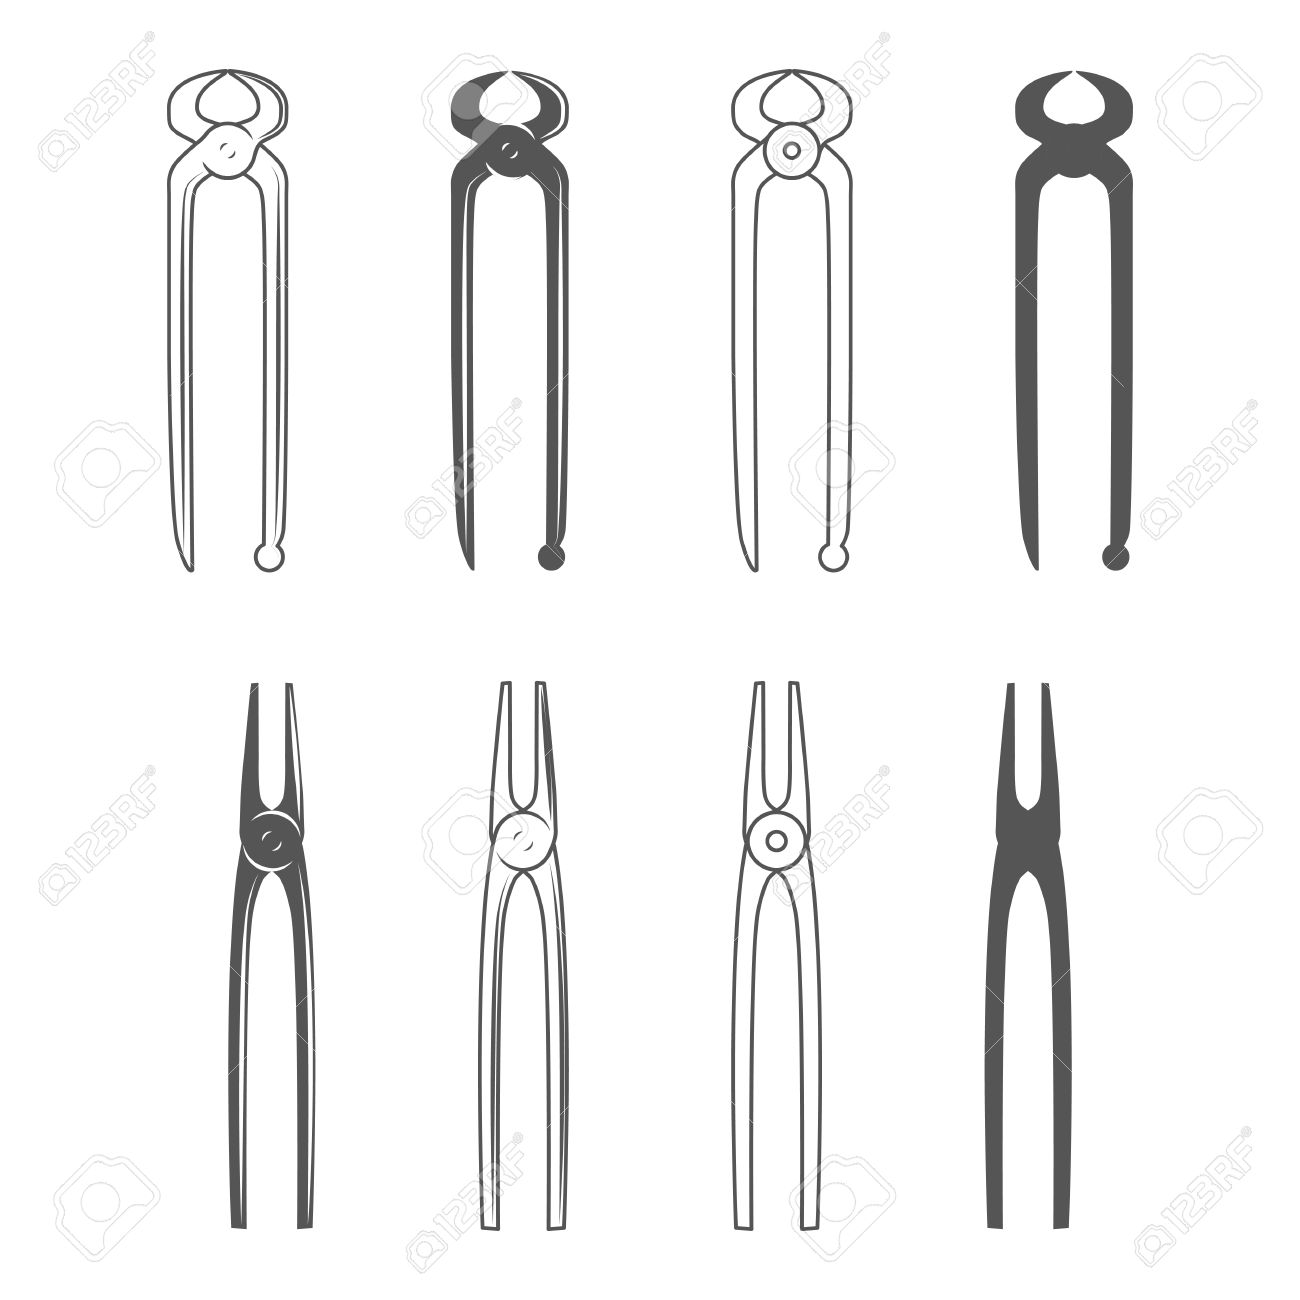 Anvil clipart blacksmith tongs. Vintage style vector illustration